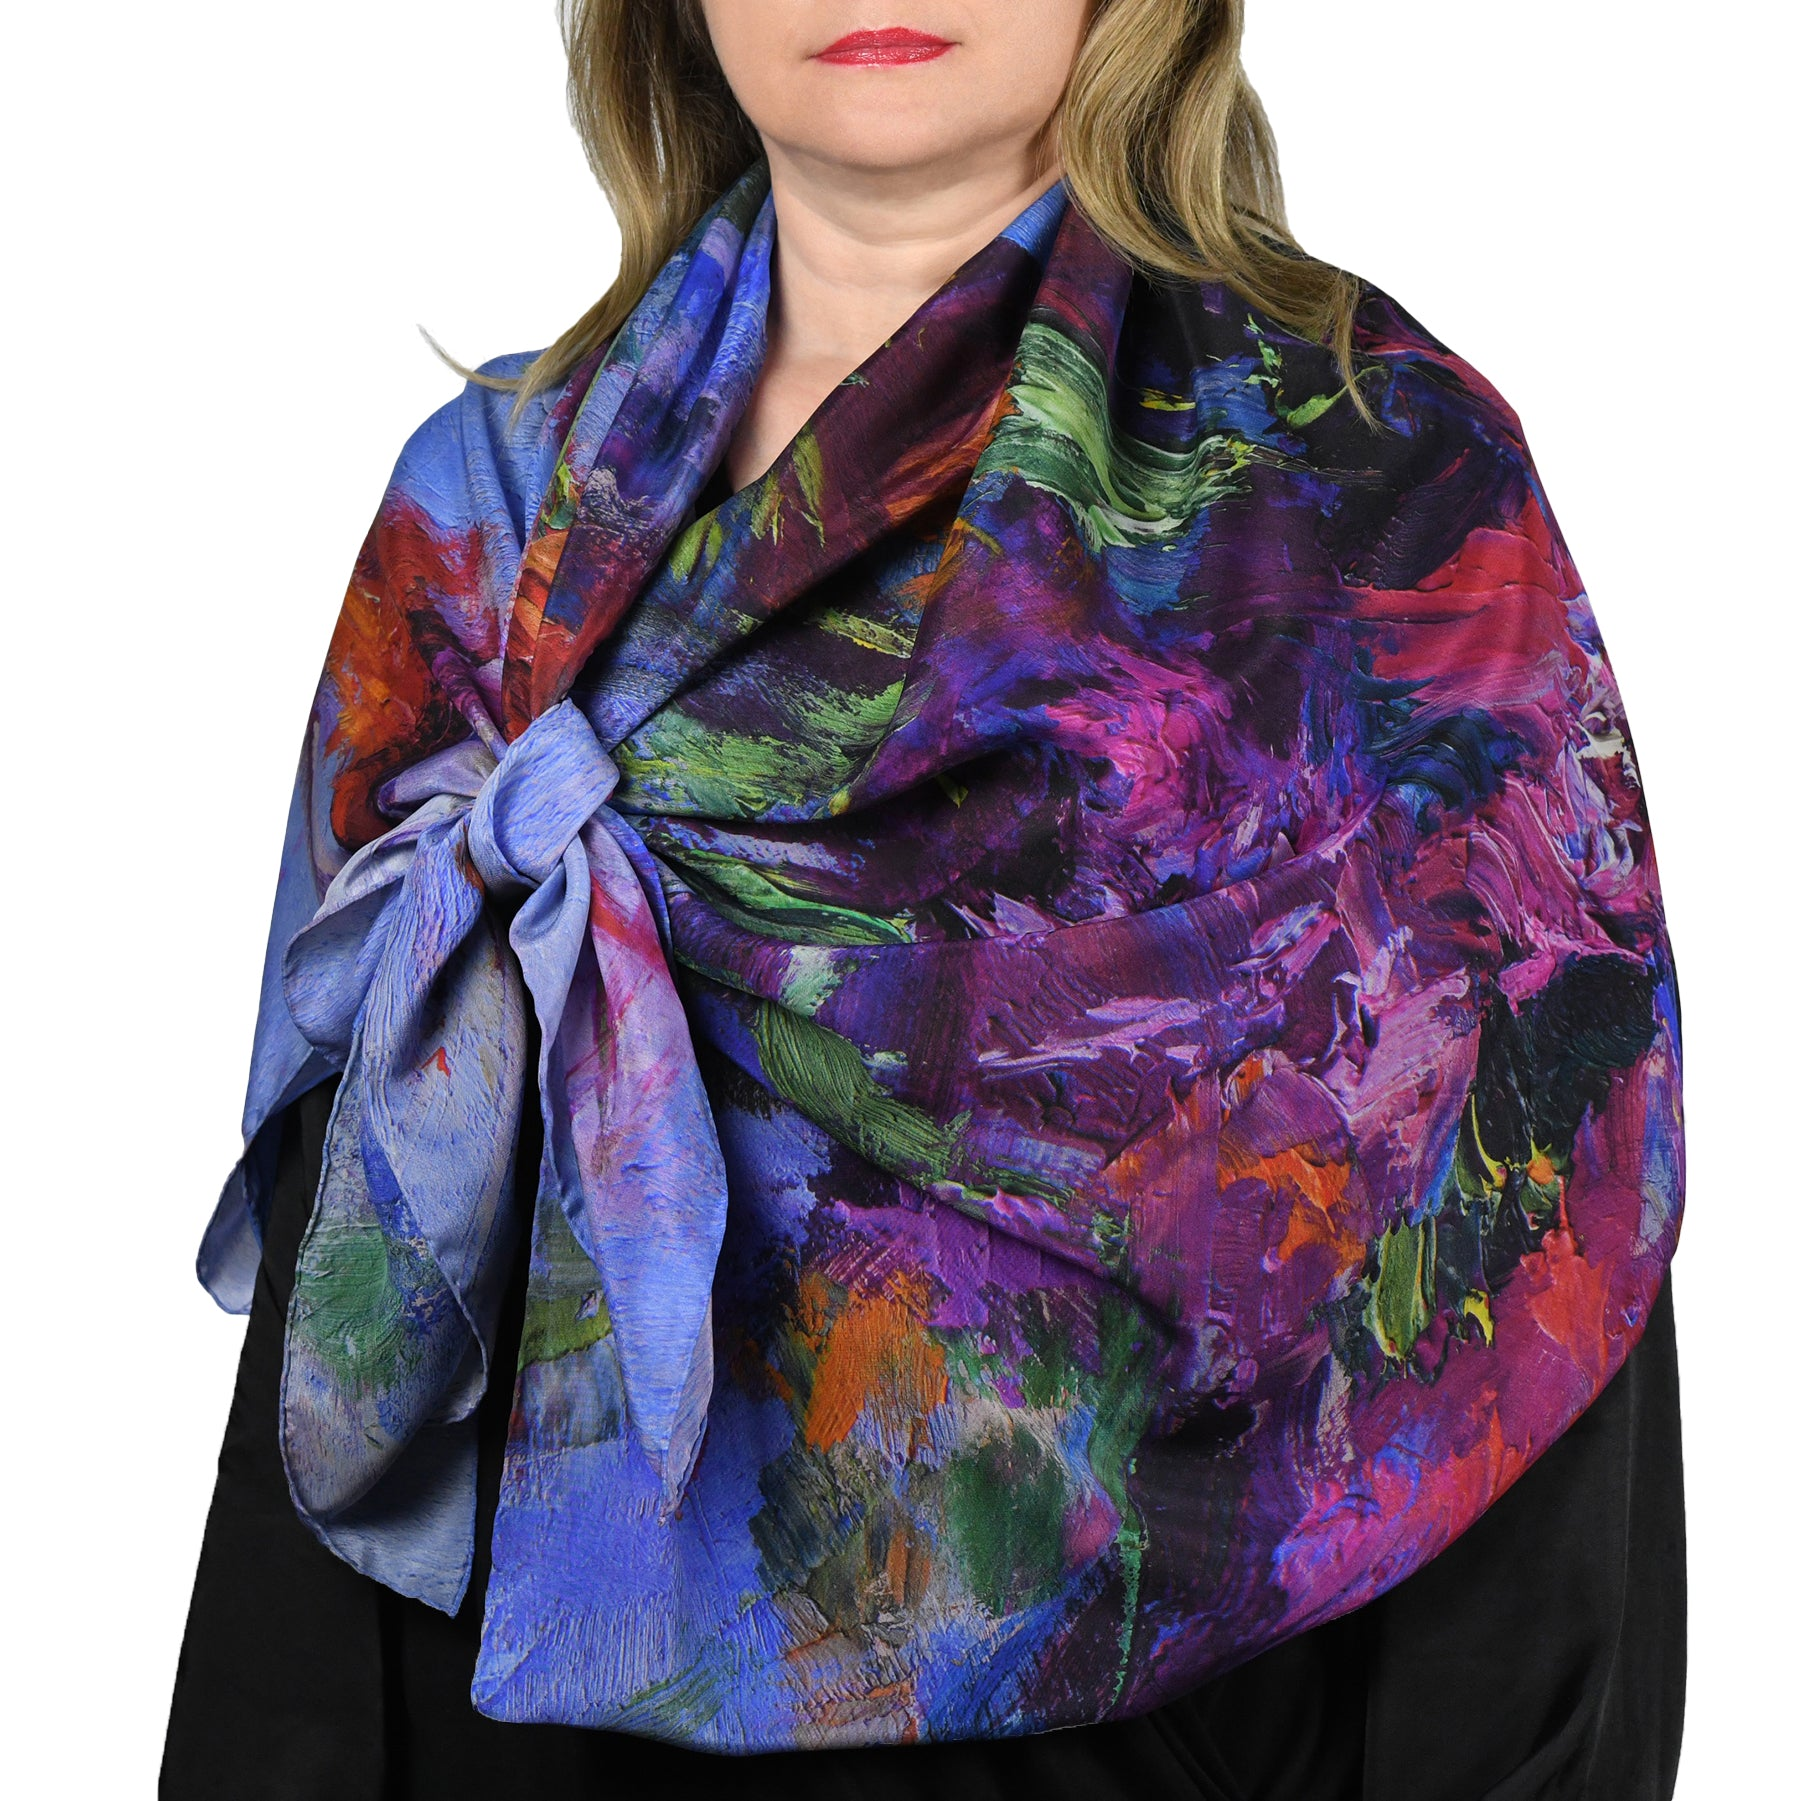 Woman wearing oversized large multi color silk scarf with floral design, Lavender Dream, by Oksana Fine Art and Design (includes blues, purples, oranges, reds, greens).